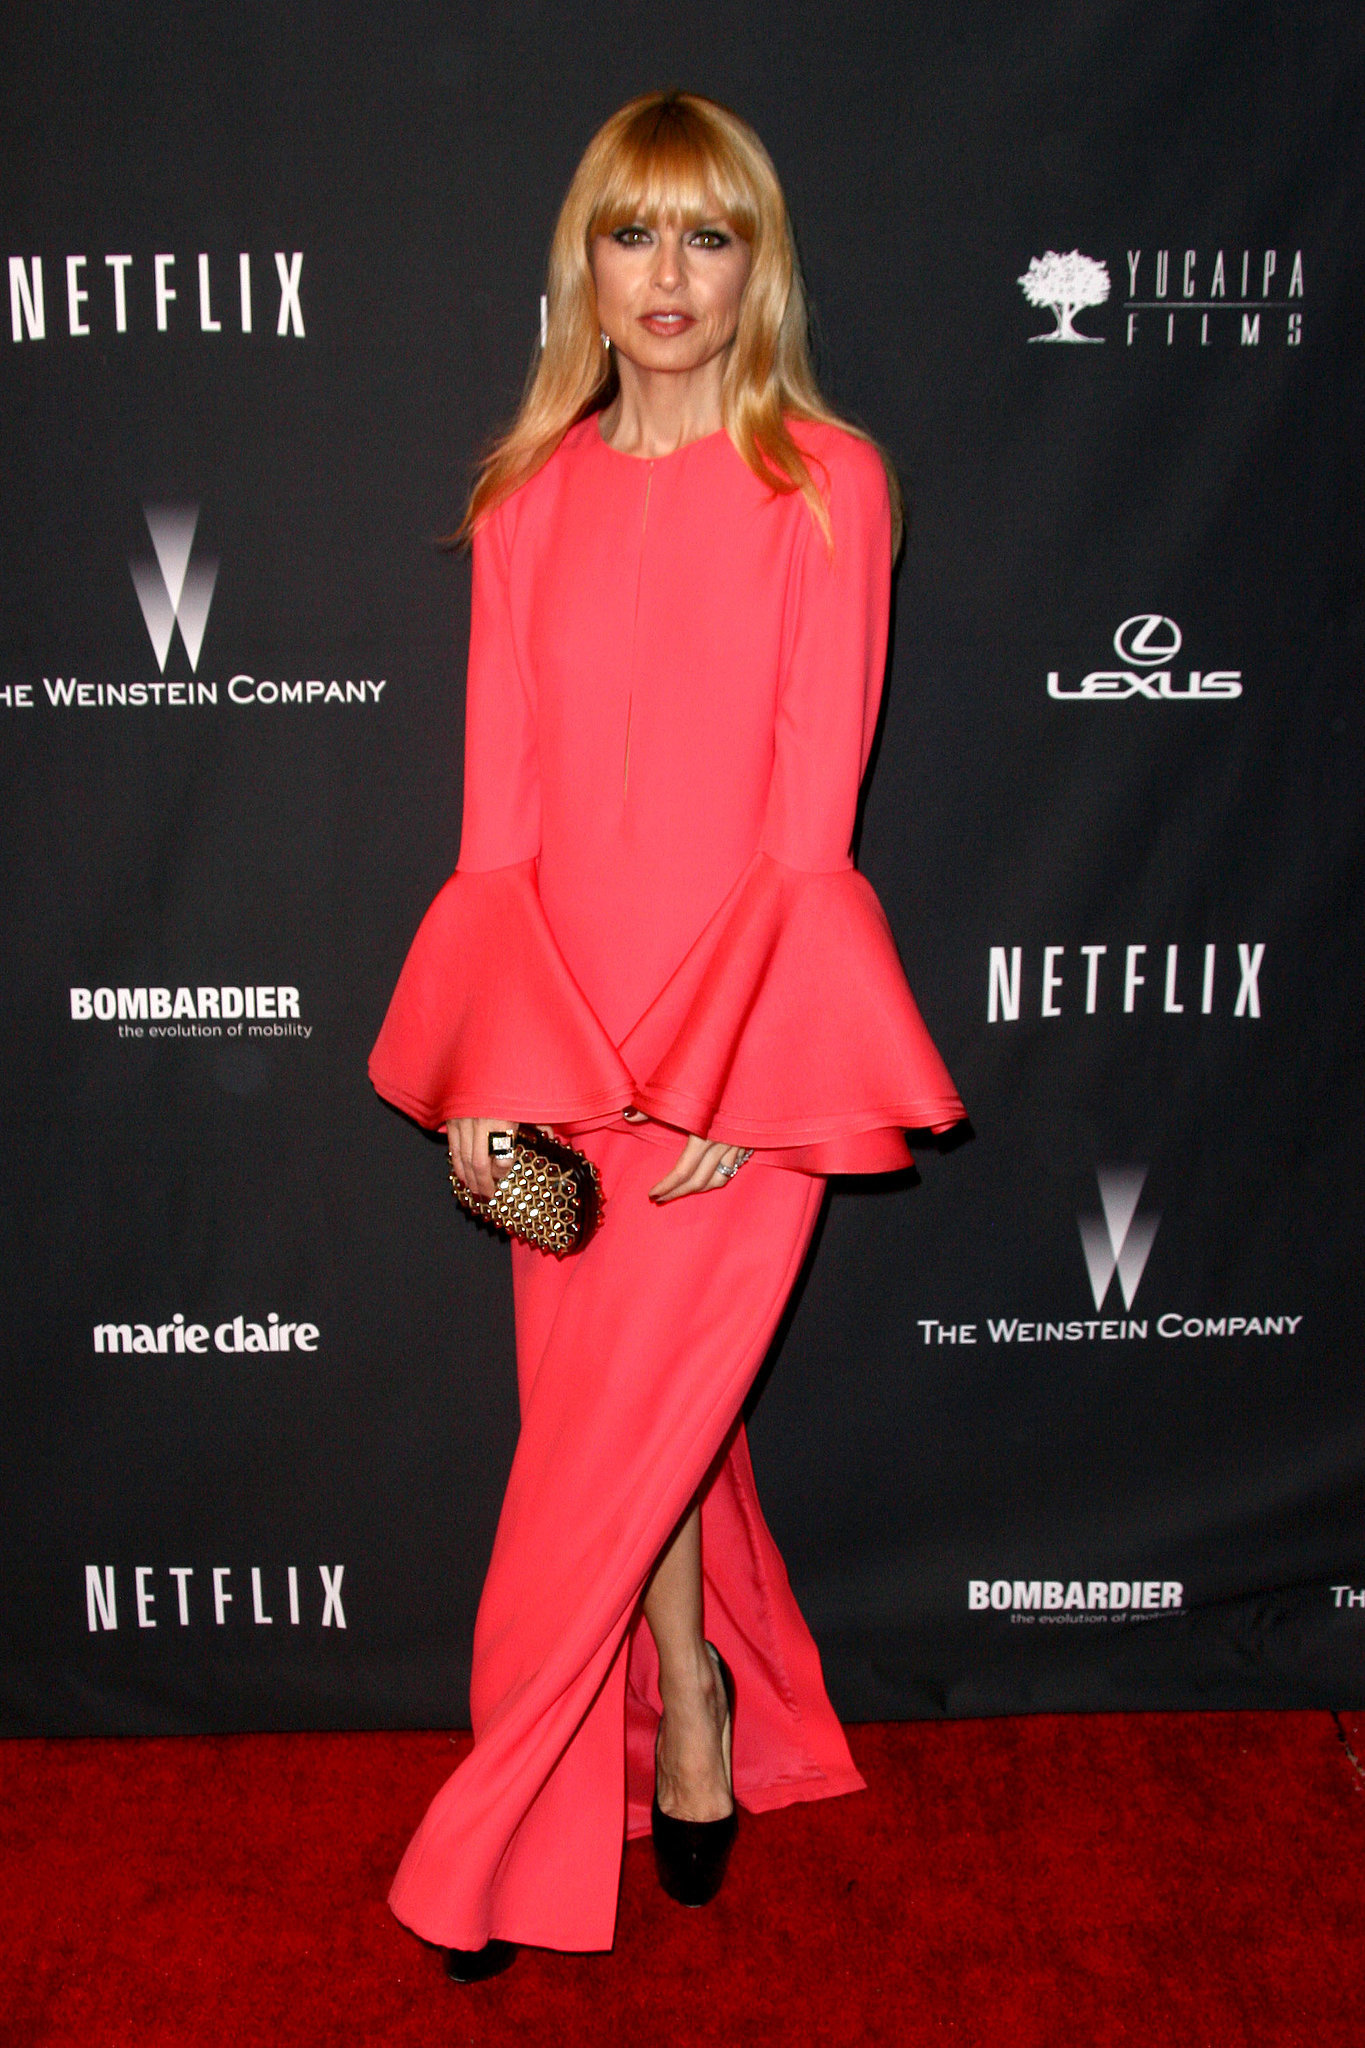 Rachel Zoe's bright, voluminous 2014 Golden Globes dress will have heads turning. Where to Wear: A night of creativity and culture at the hottest art gallery.